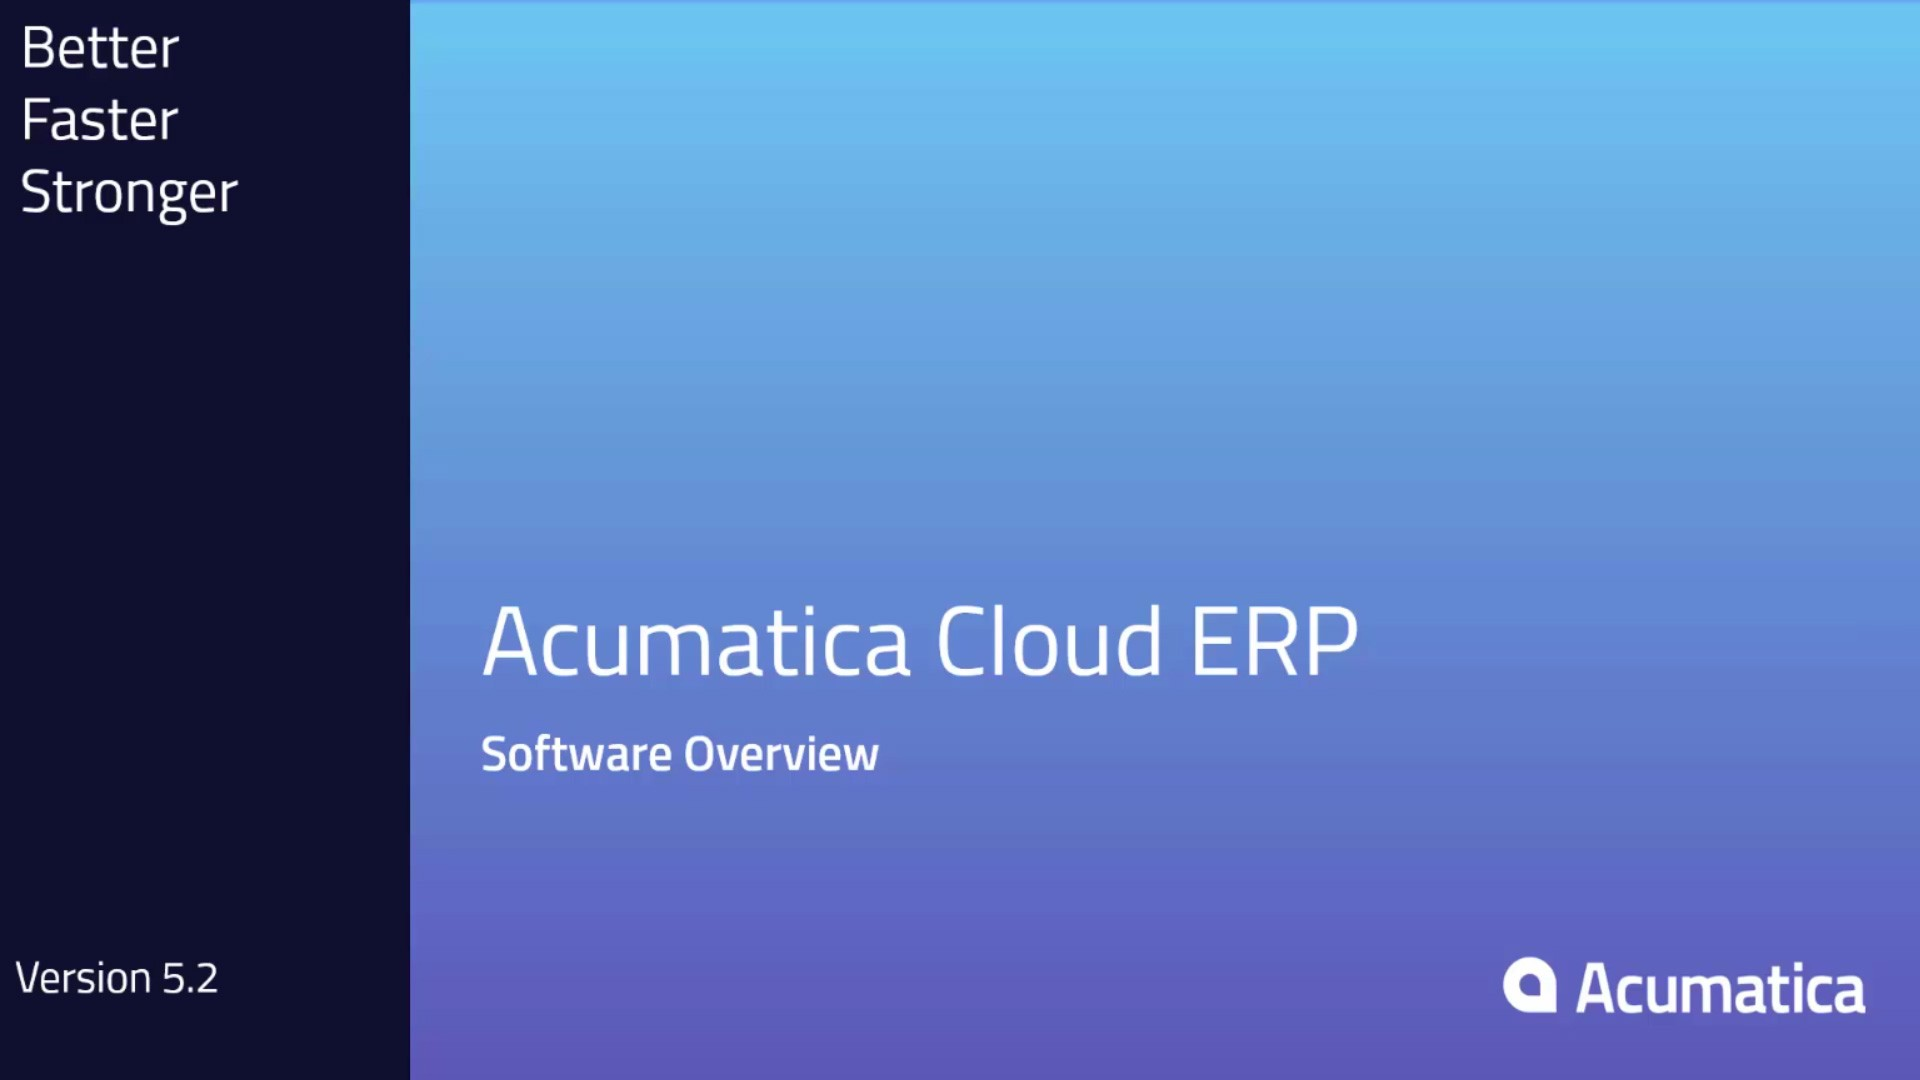 Comprehensive overview of Acumatica Cloud ERP